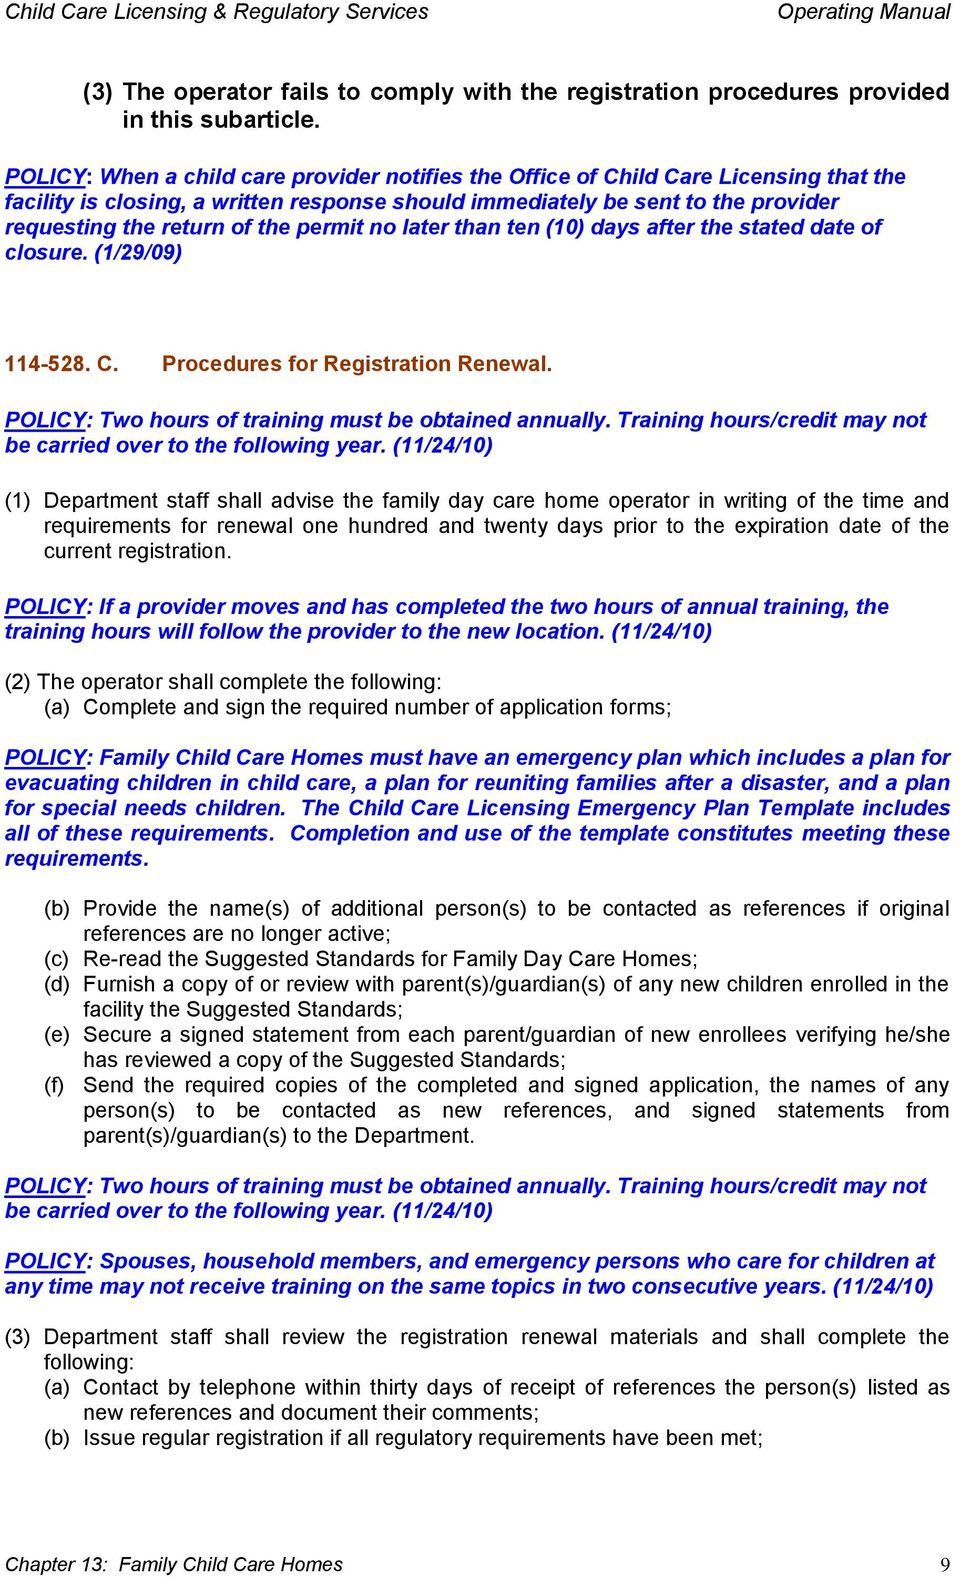 permit no later than ten (10) days after the stated date of closure. (1/29/09) 114-528. C. Procedures for Registration Renewal. POLICY: Two hours of training must be obtained annually.